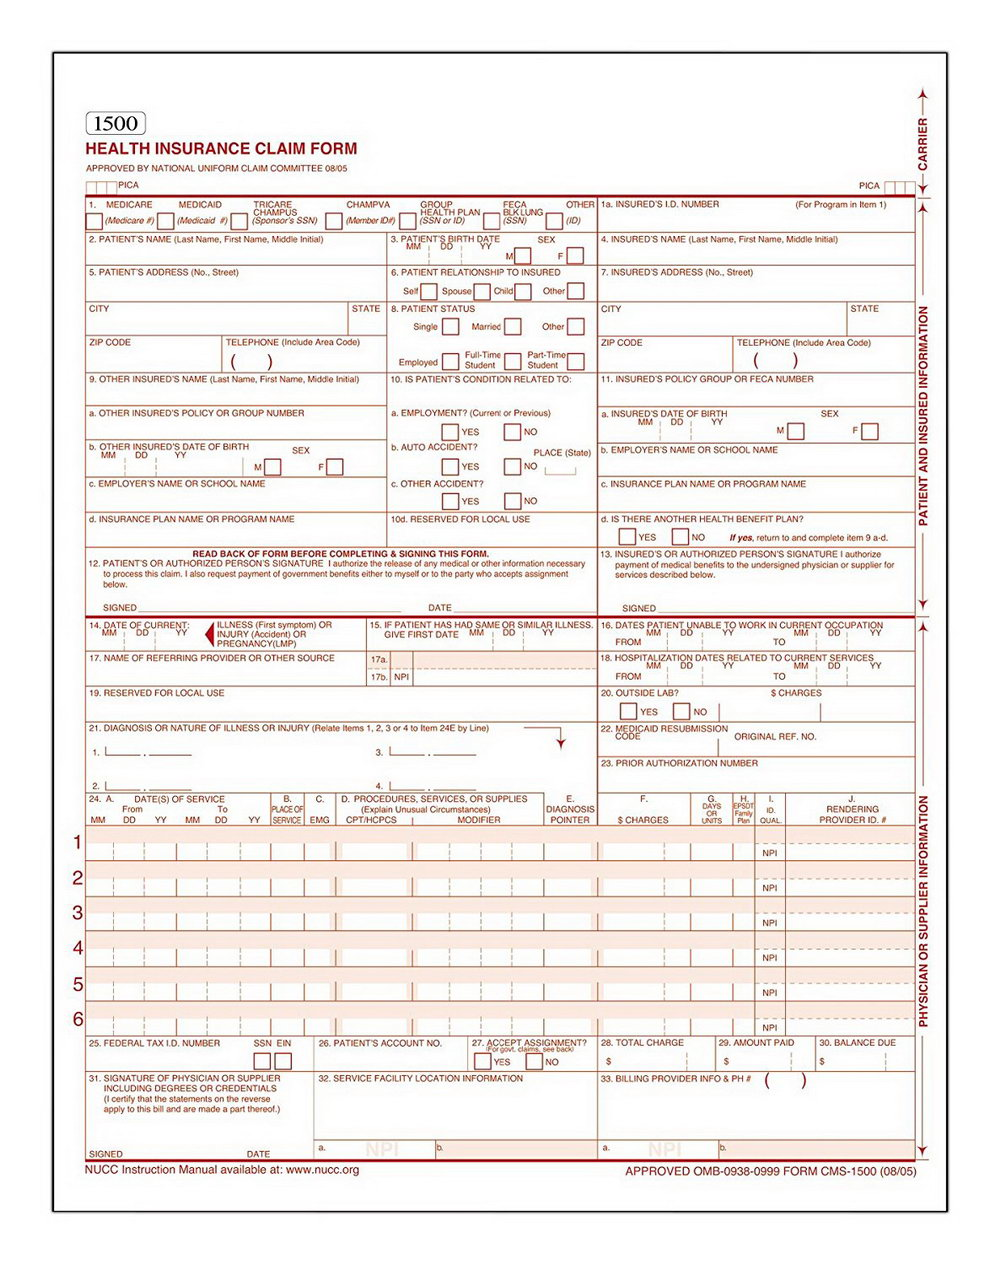 Hcfa Claim Form Instructions